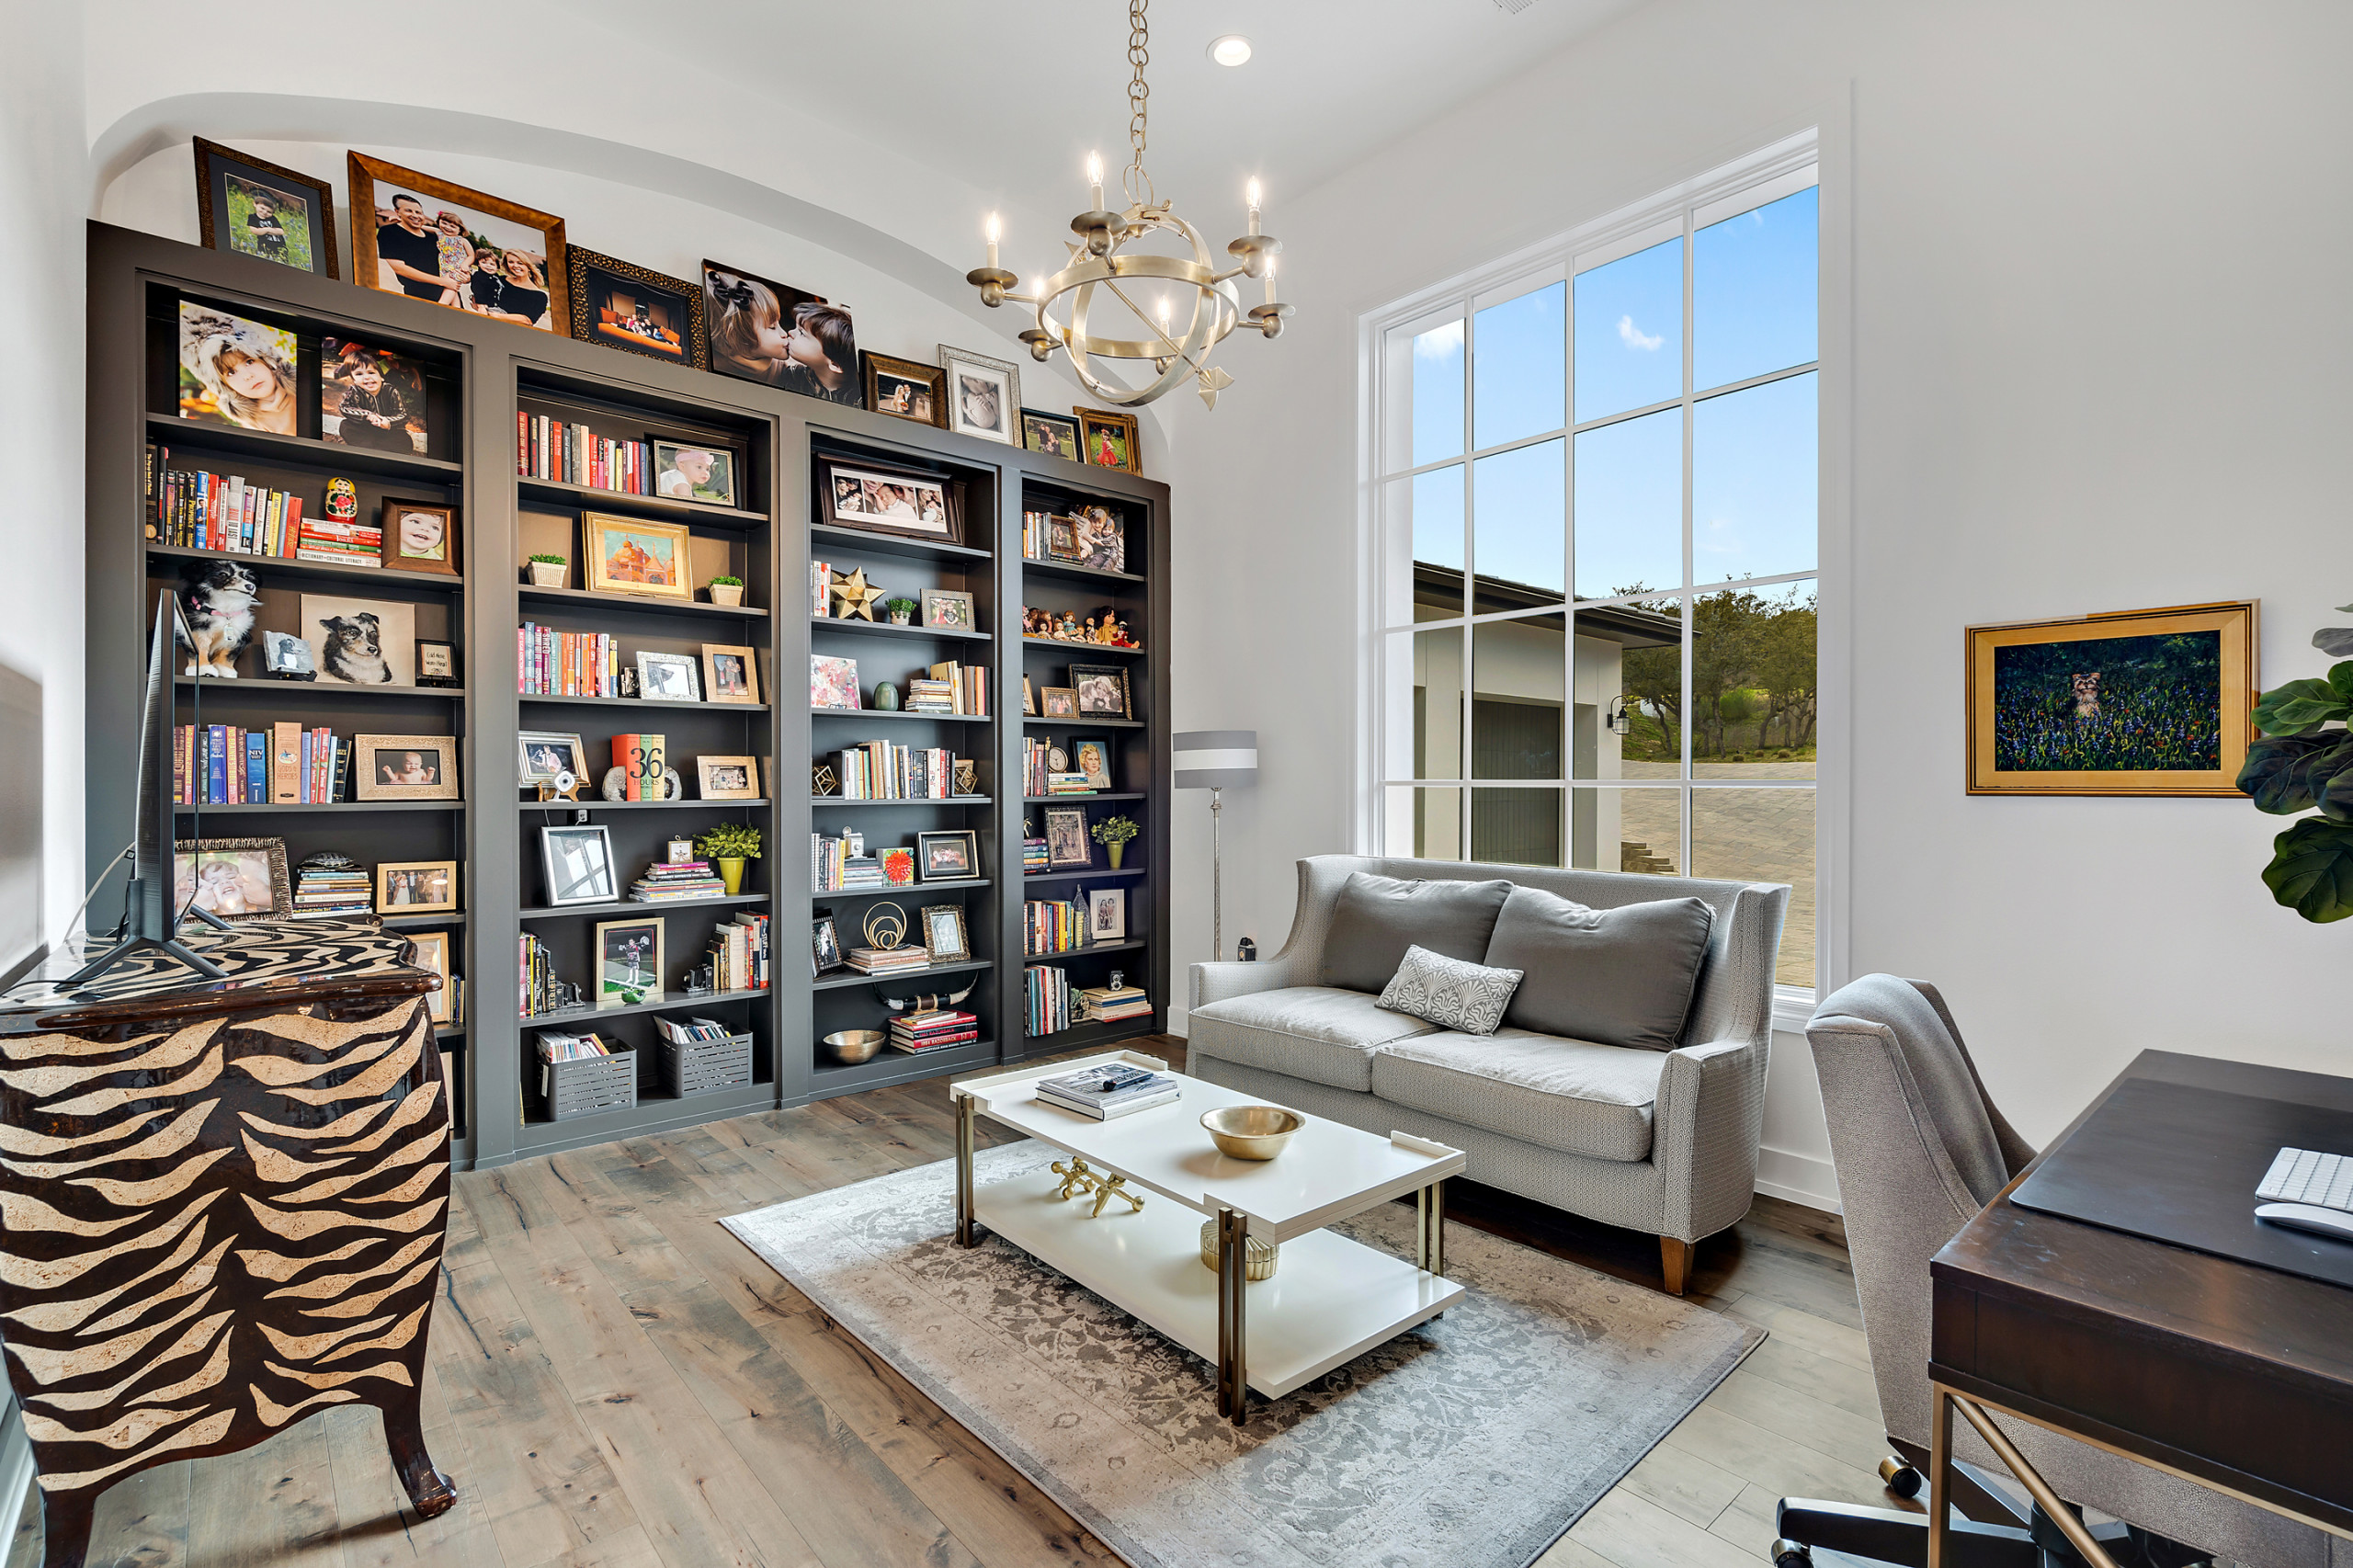 75 Beautiful Large Home Office Pictures Ideas February 2021 Houzz